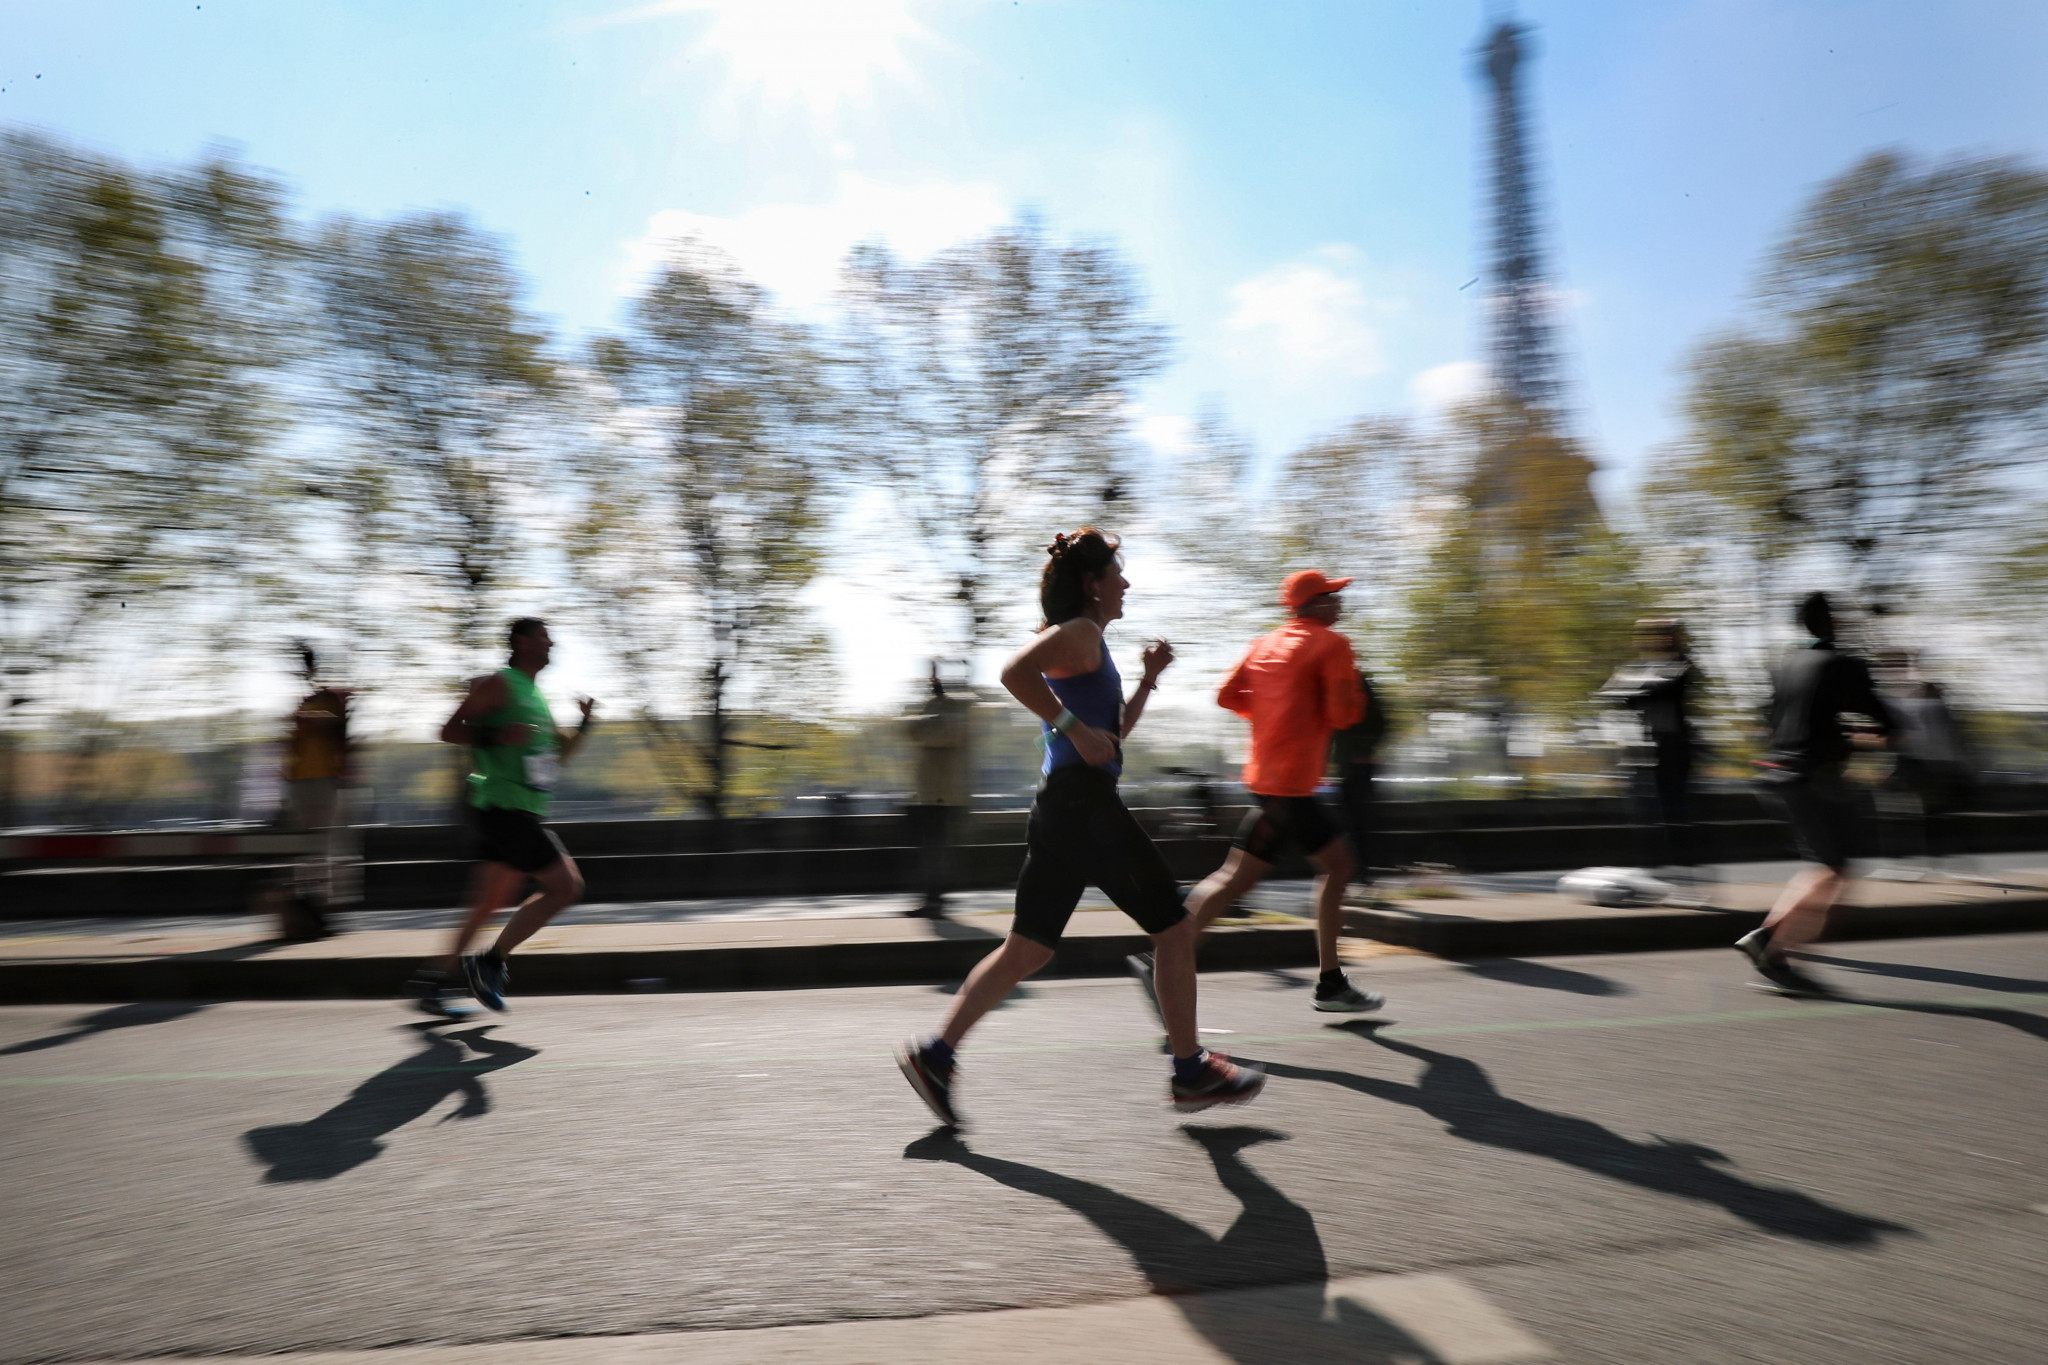 Mass participation events are planned for Paris 2024 to engage the French population with the Games ©Getty Images